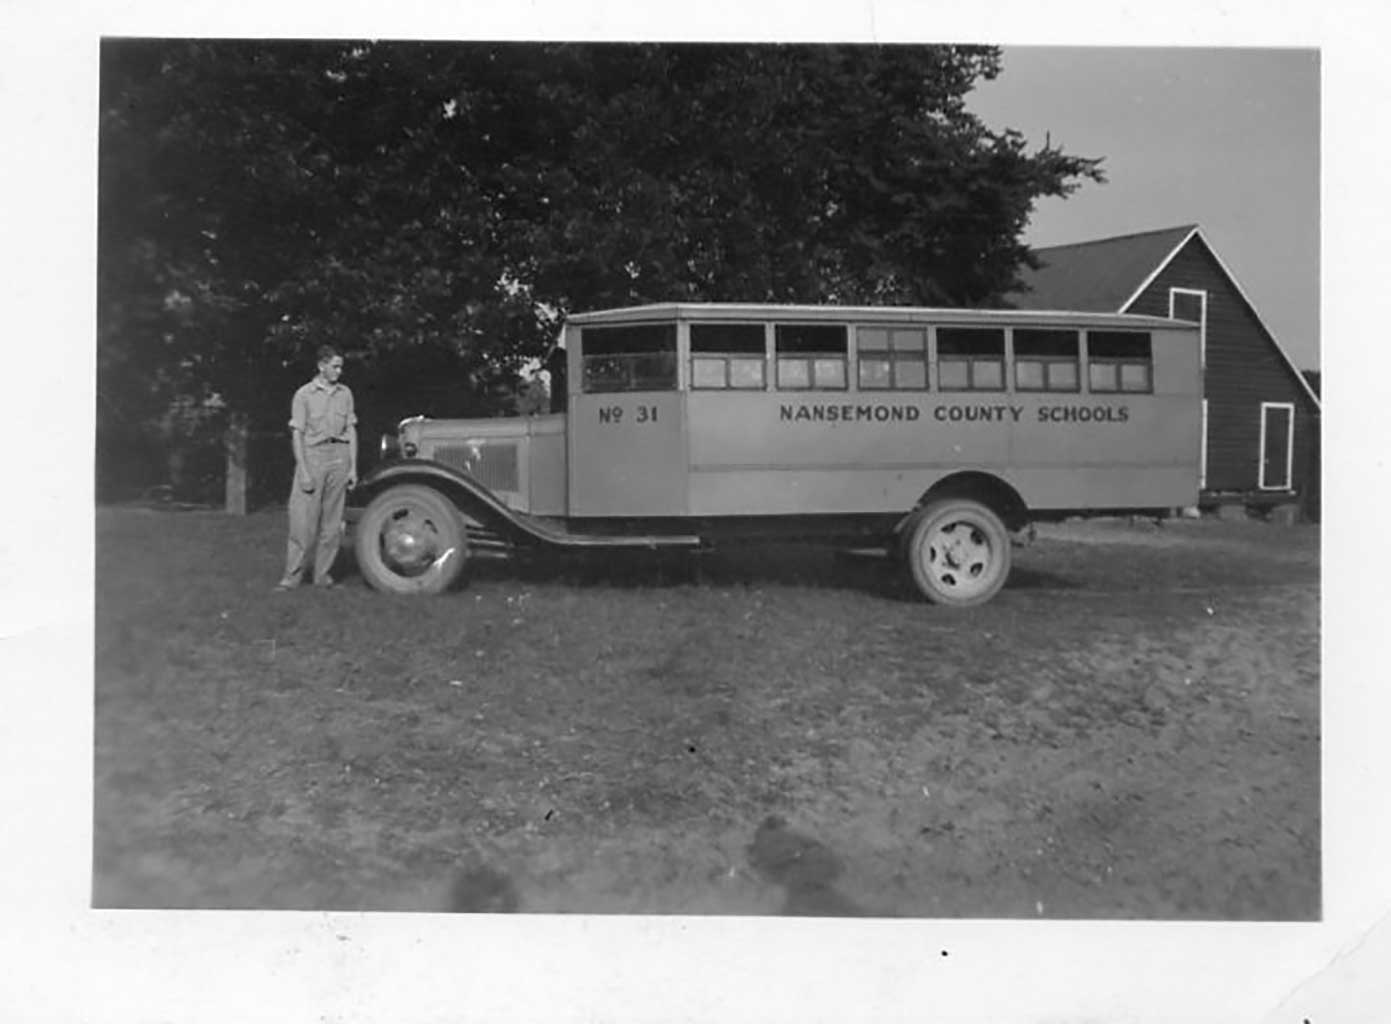 nathaniel-gray-and-his-1943-school-bus-via-everets-road-and-sandy-bottom-img377